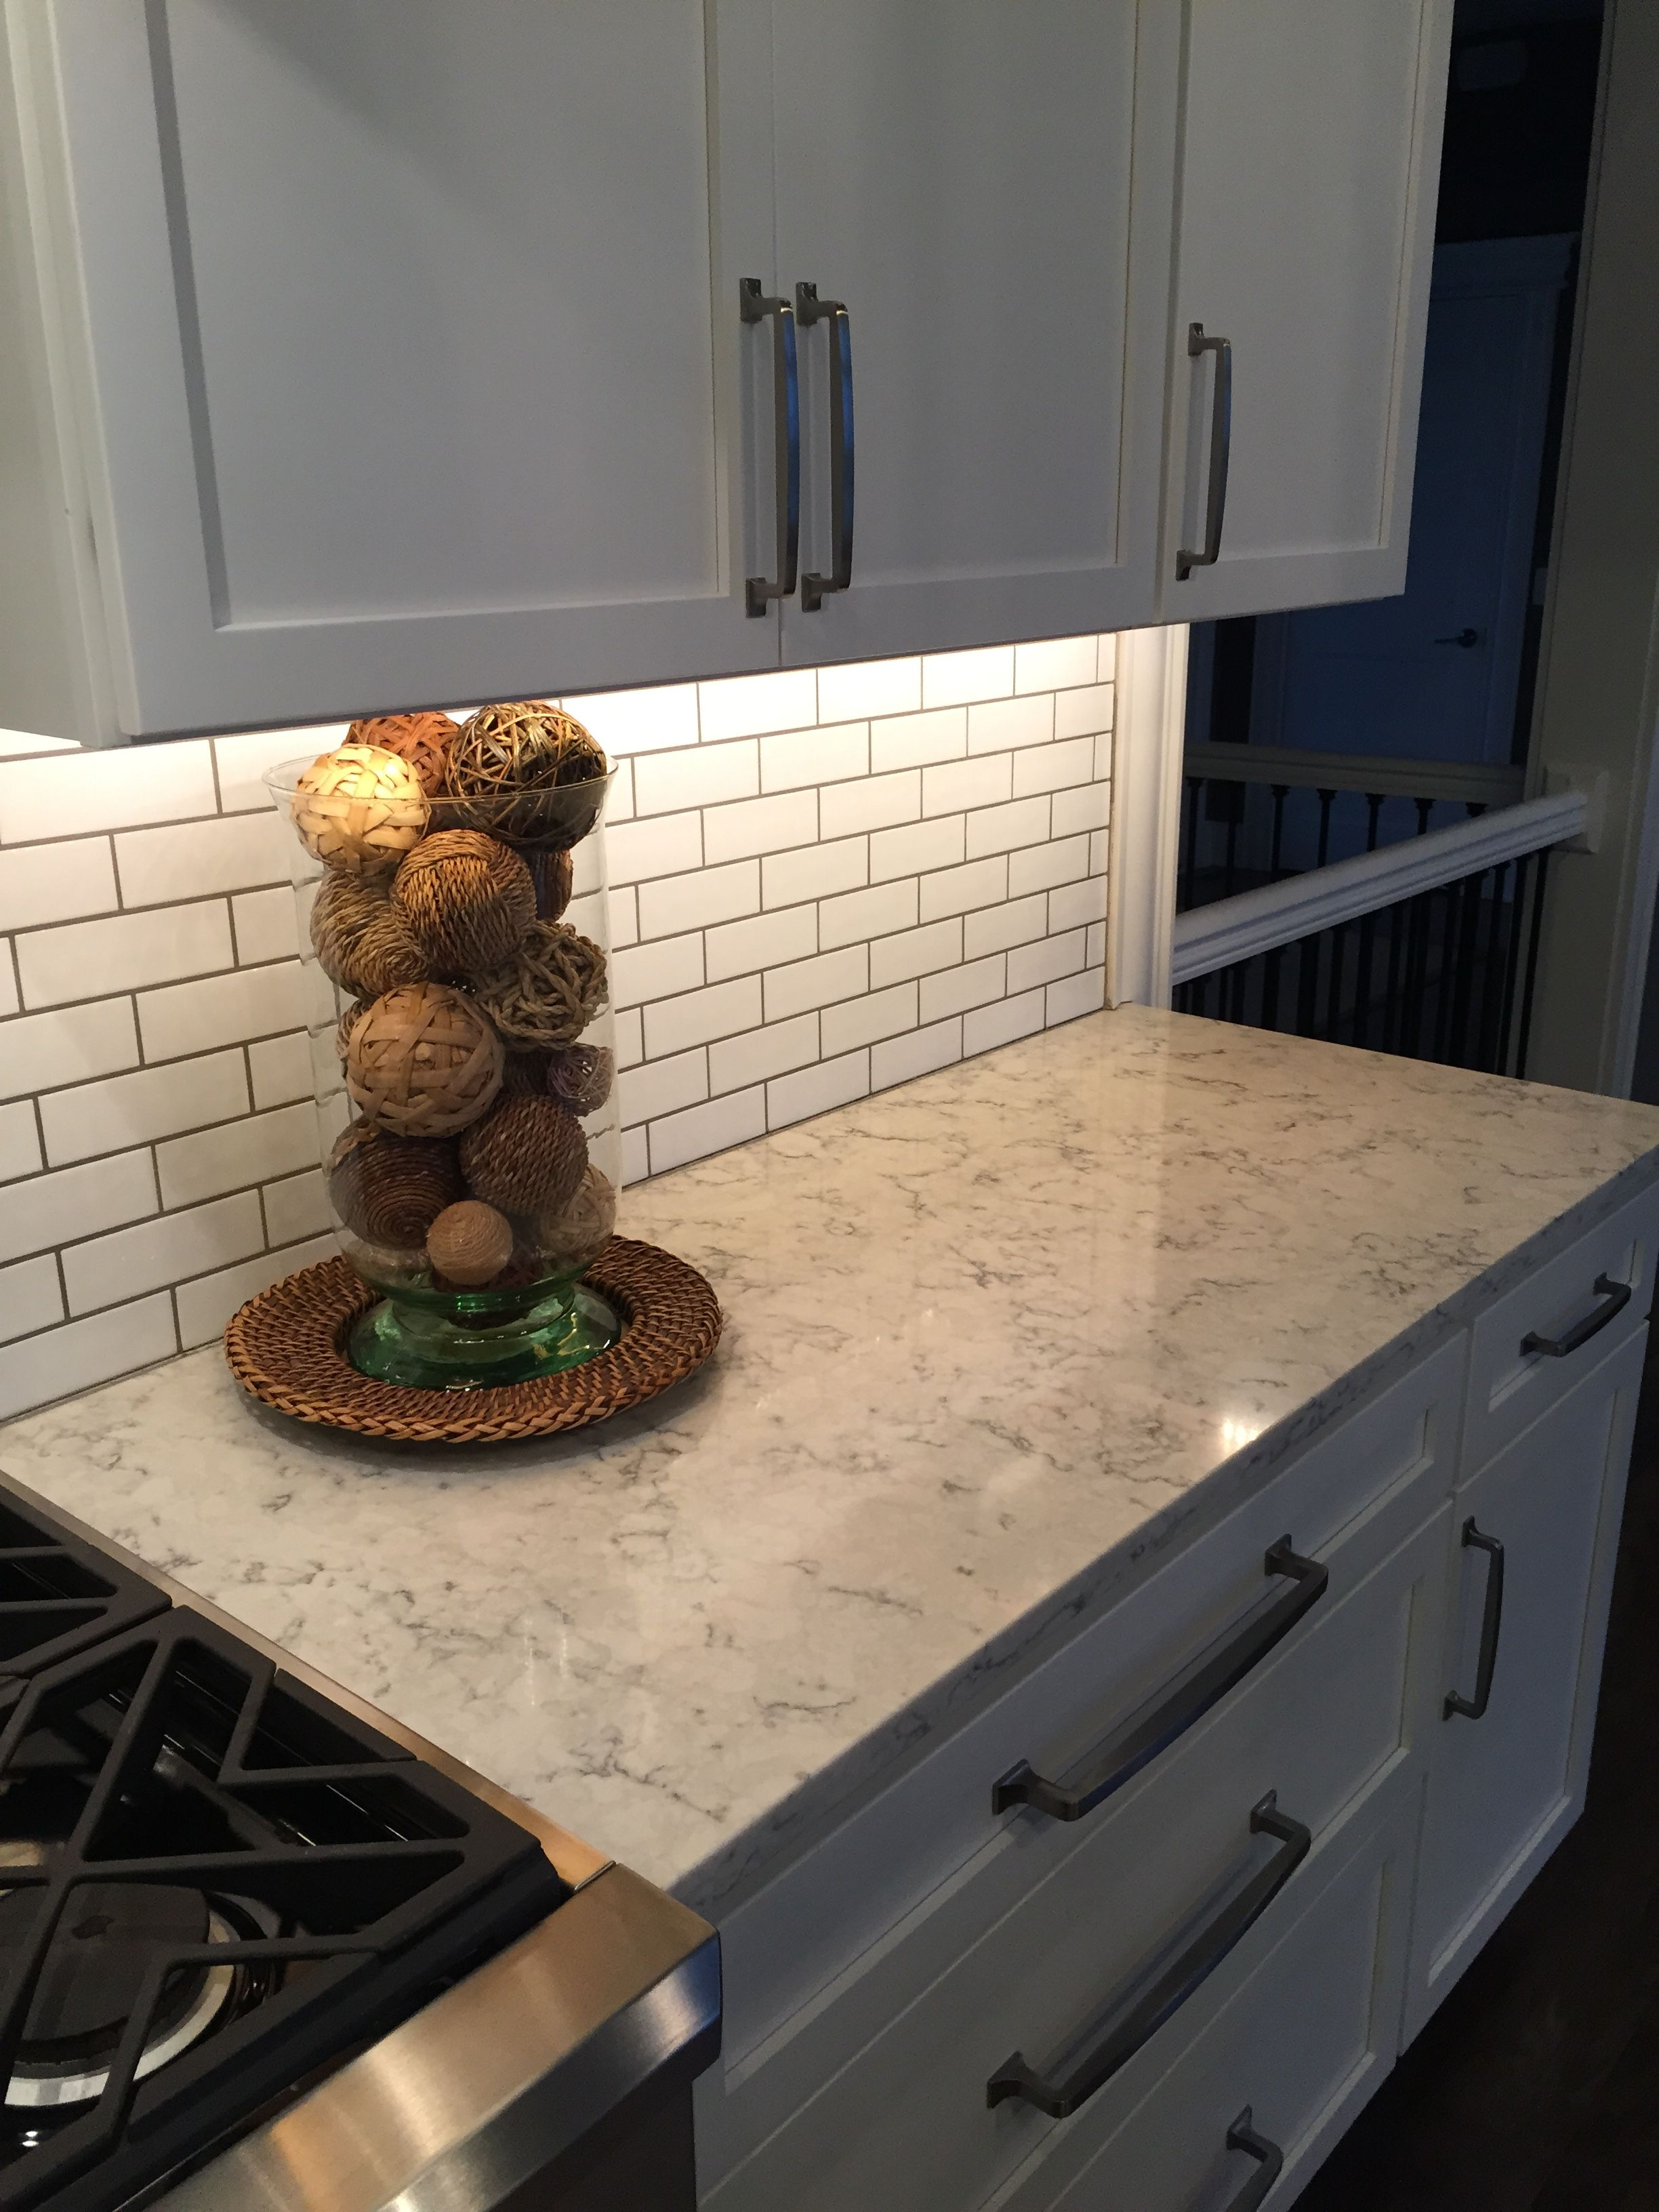 3cm Viatera Quartz Rococo With Subway Tile Backsplash, A Timeless Look